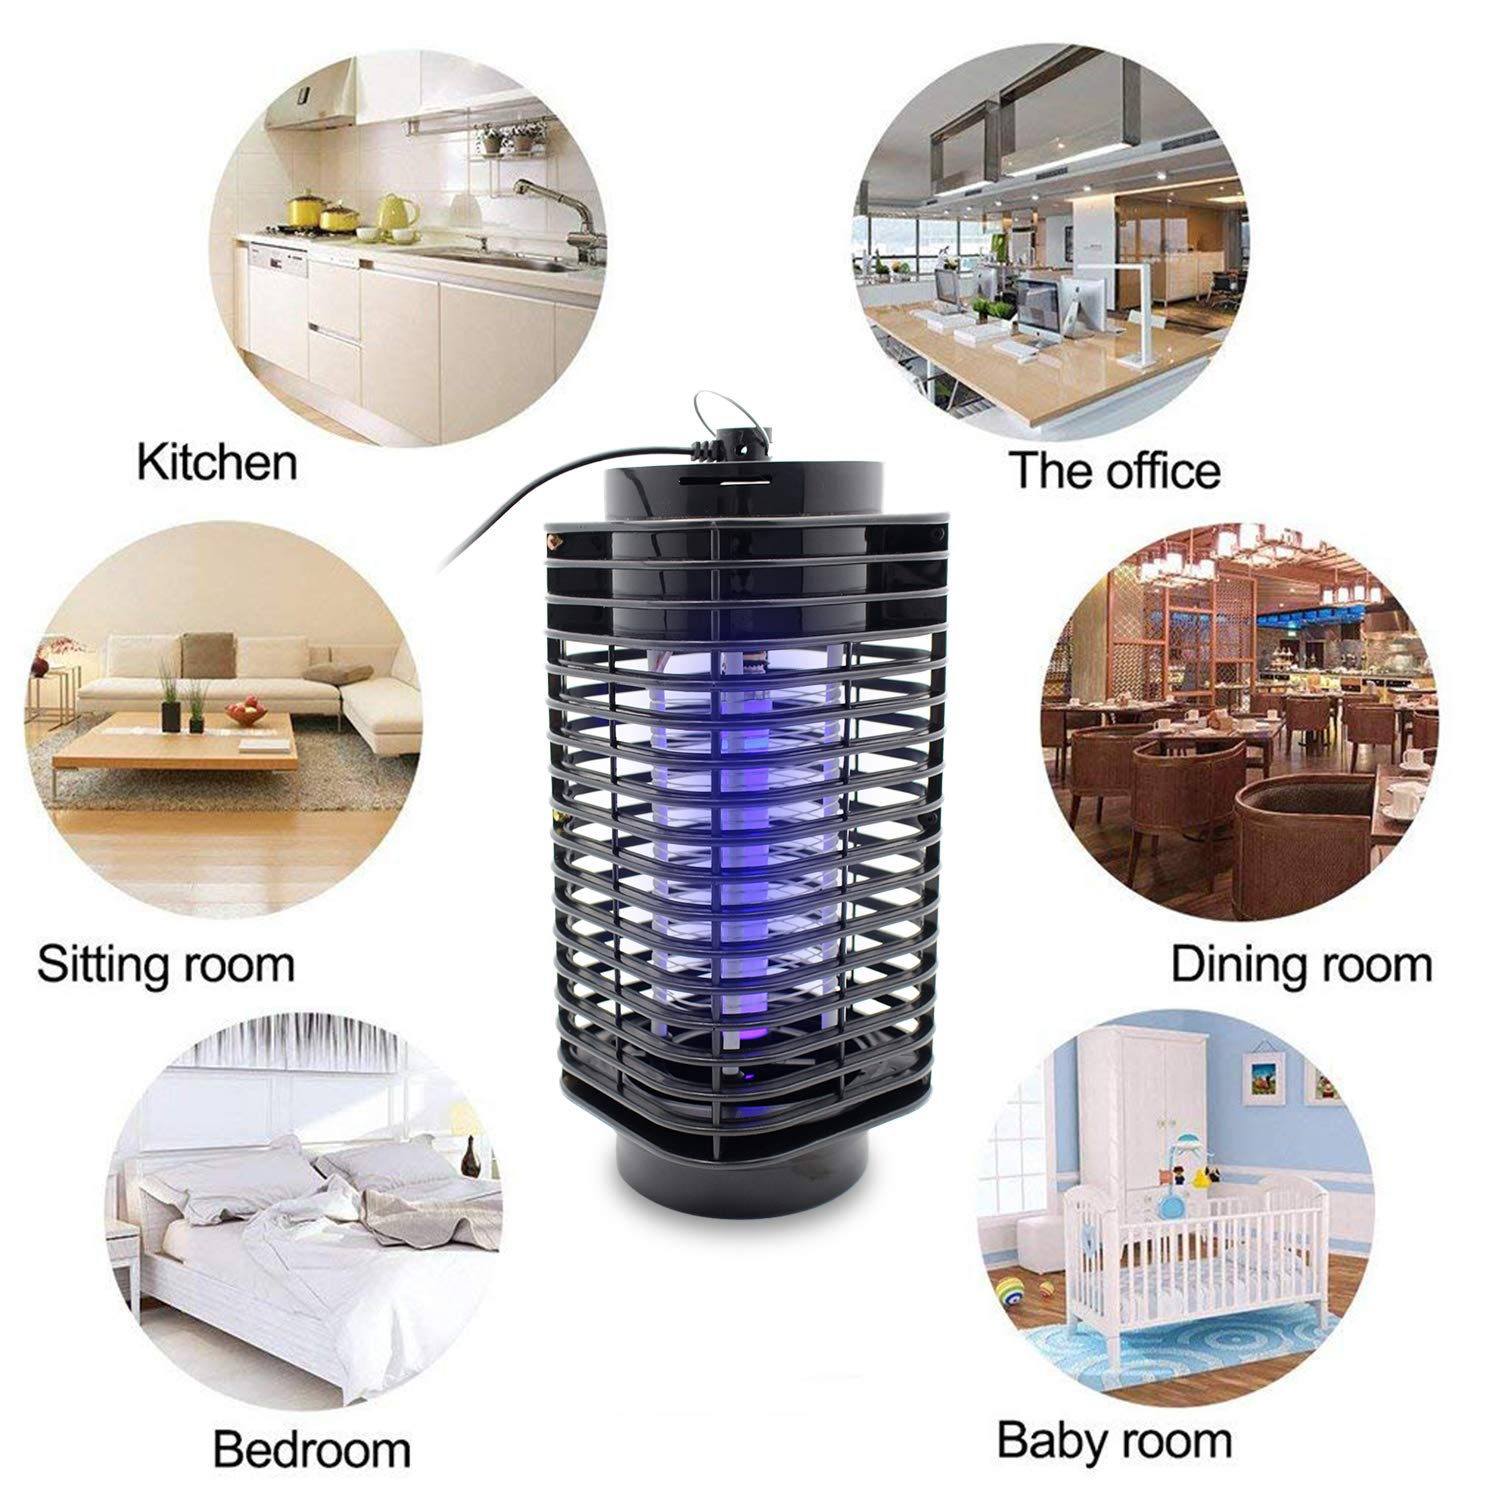 fomei Bug Zapper Mosquito Killer Insect Trap Pest Control Light Electronic UV Lamp for Indoor Outdoor Bedroom Kitchen Home Office